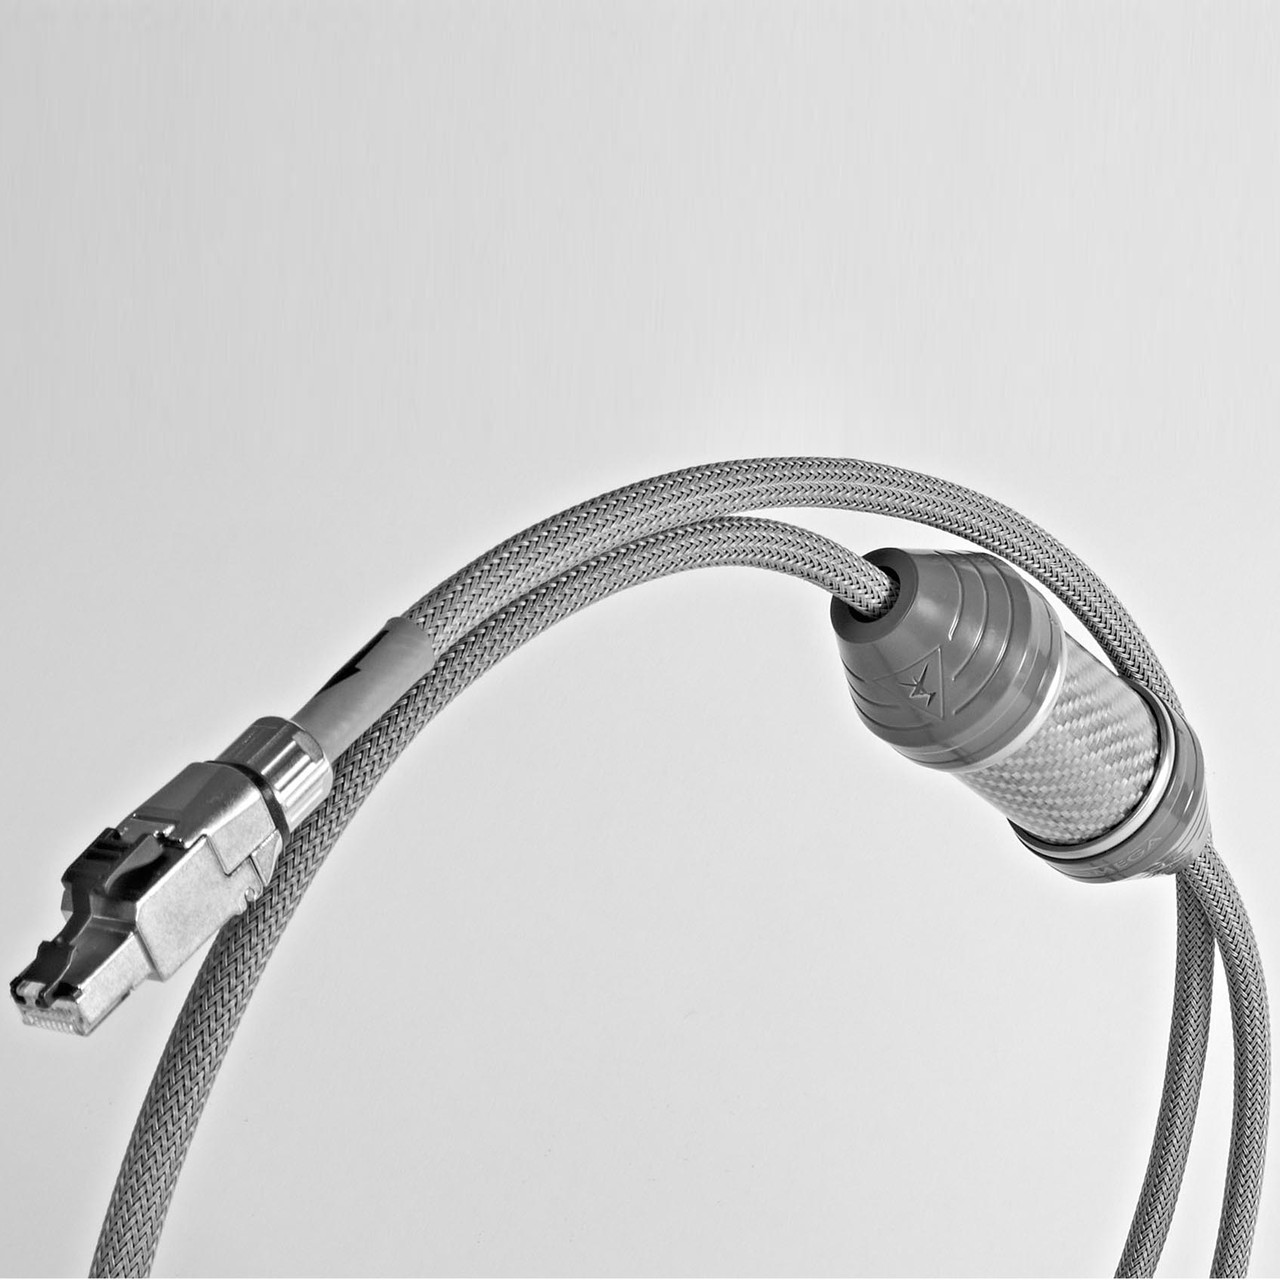 Shunyata Omega Ethernet cable